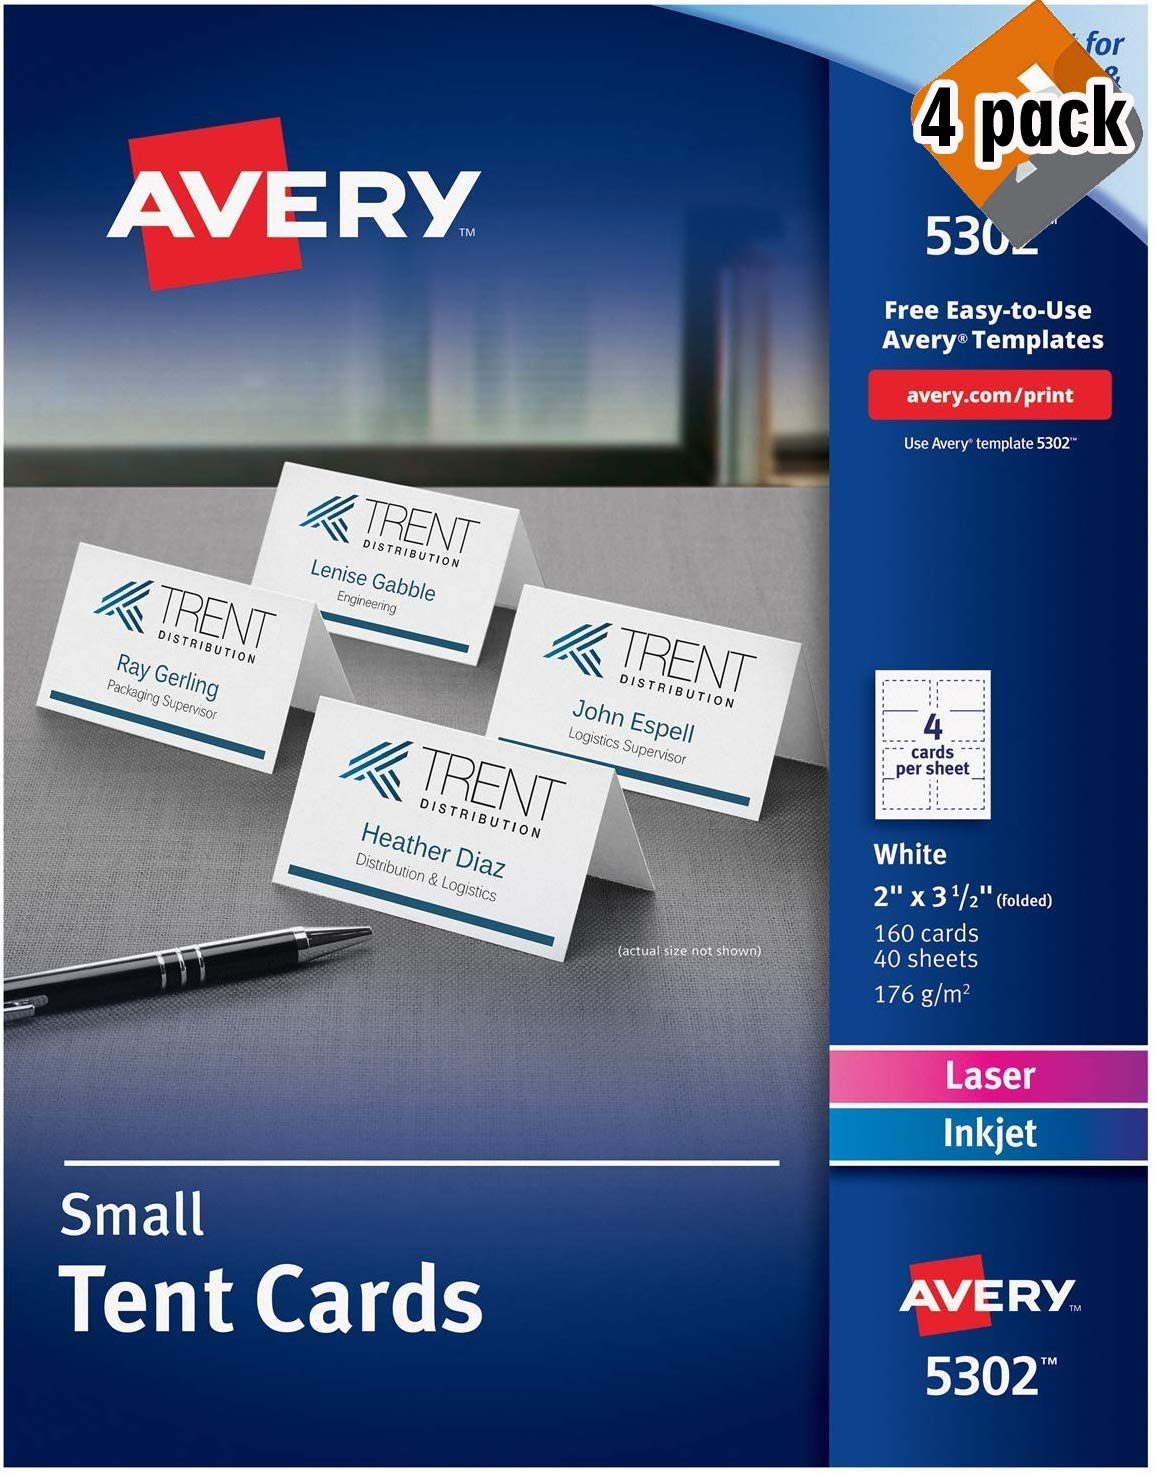 Avery Place Cards, Laser & Inkjet Printers, 160 Printable Cards, 2 x 3.5 (5302), White - 4 Pack by AVERY